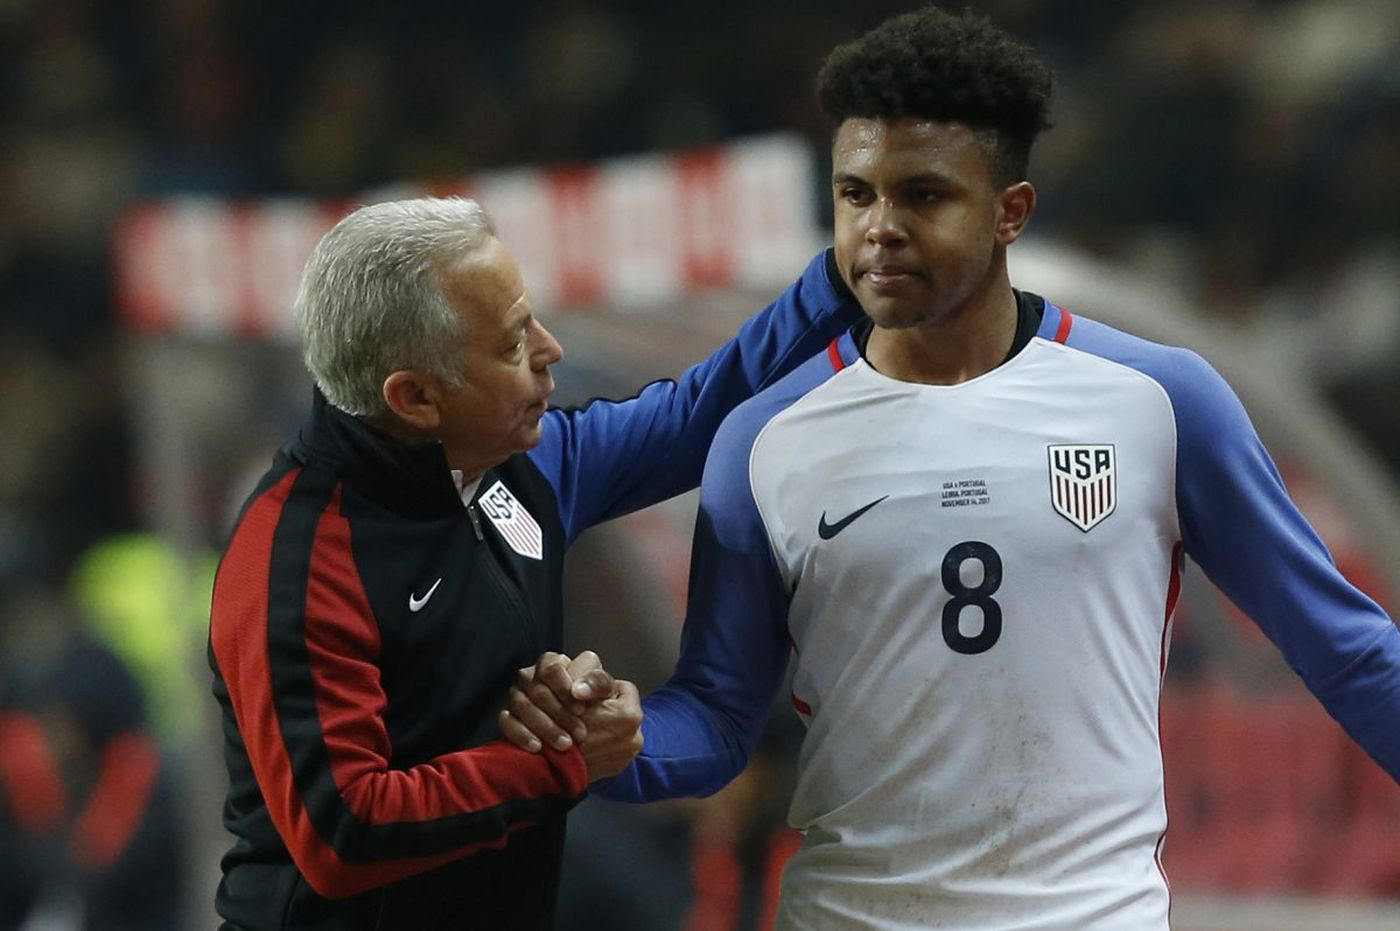 Weston McKennie, Tim Weah lead U.S. national team roster for Bolivia game in Chester